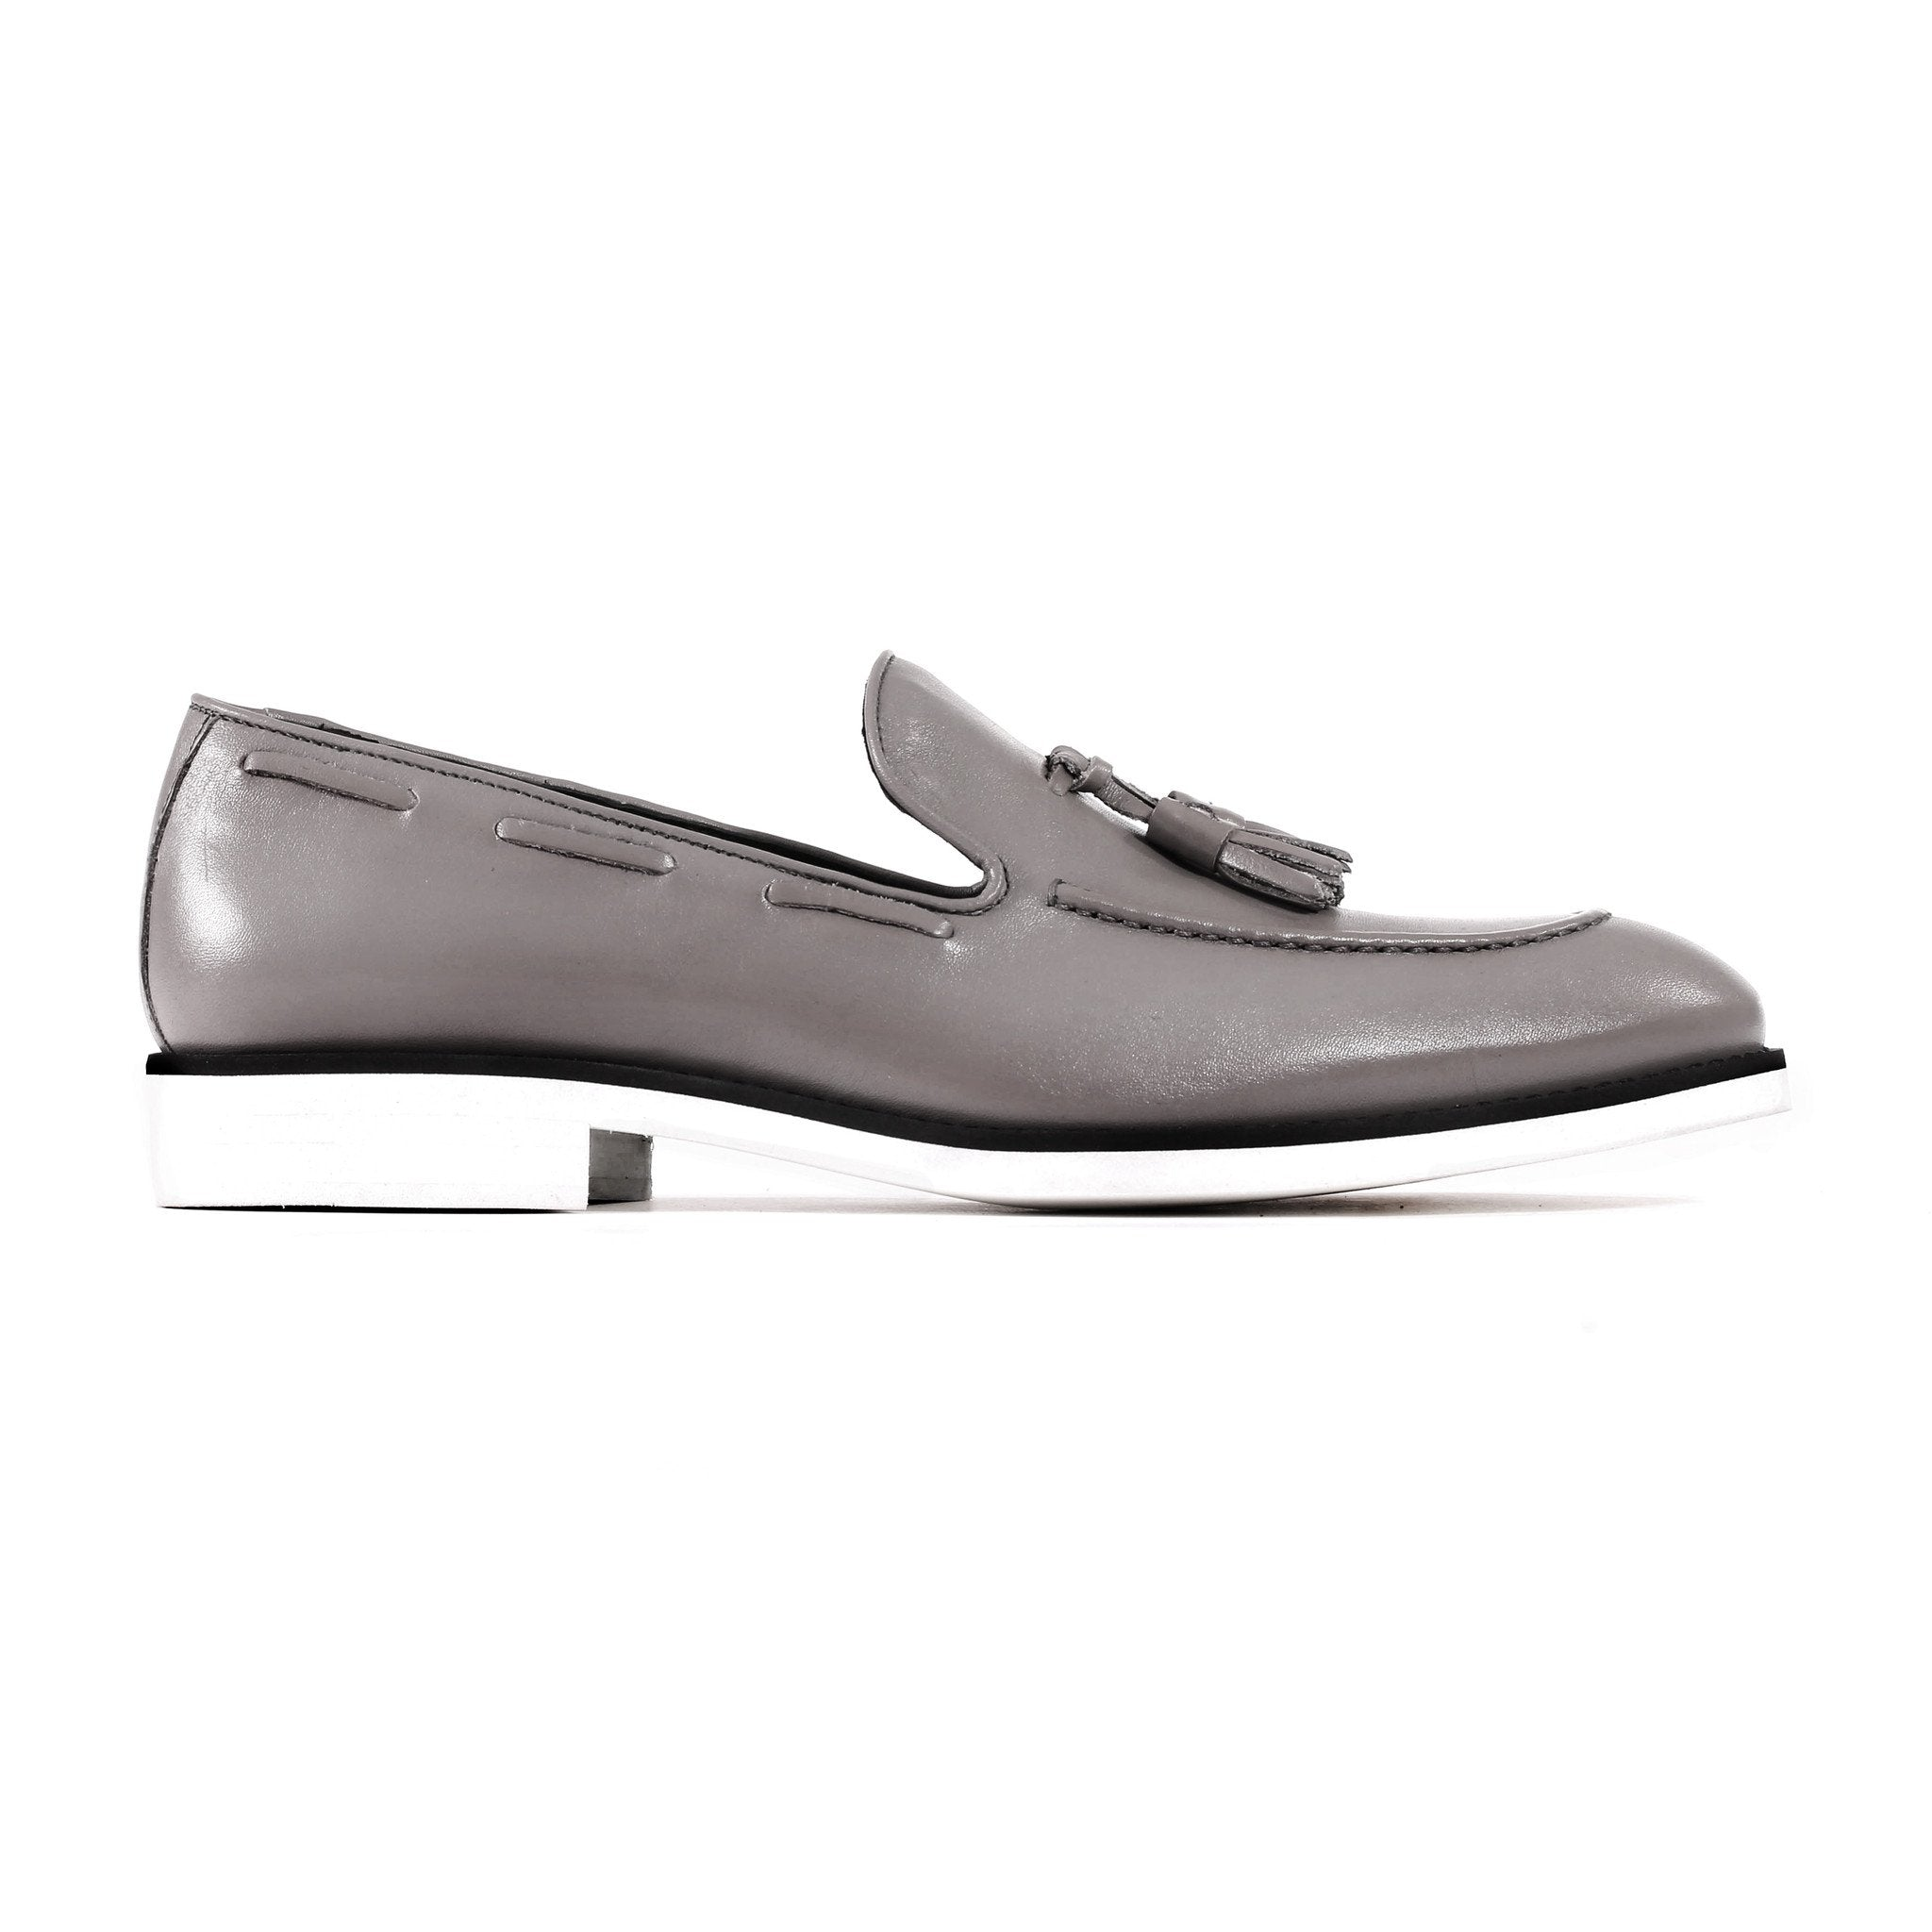 2017 Men's Grey & White Tassel Loafer